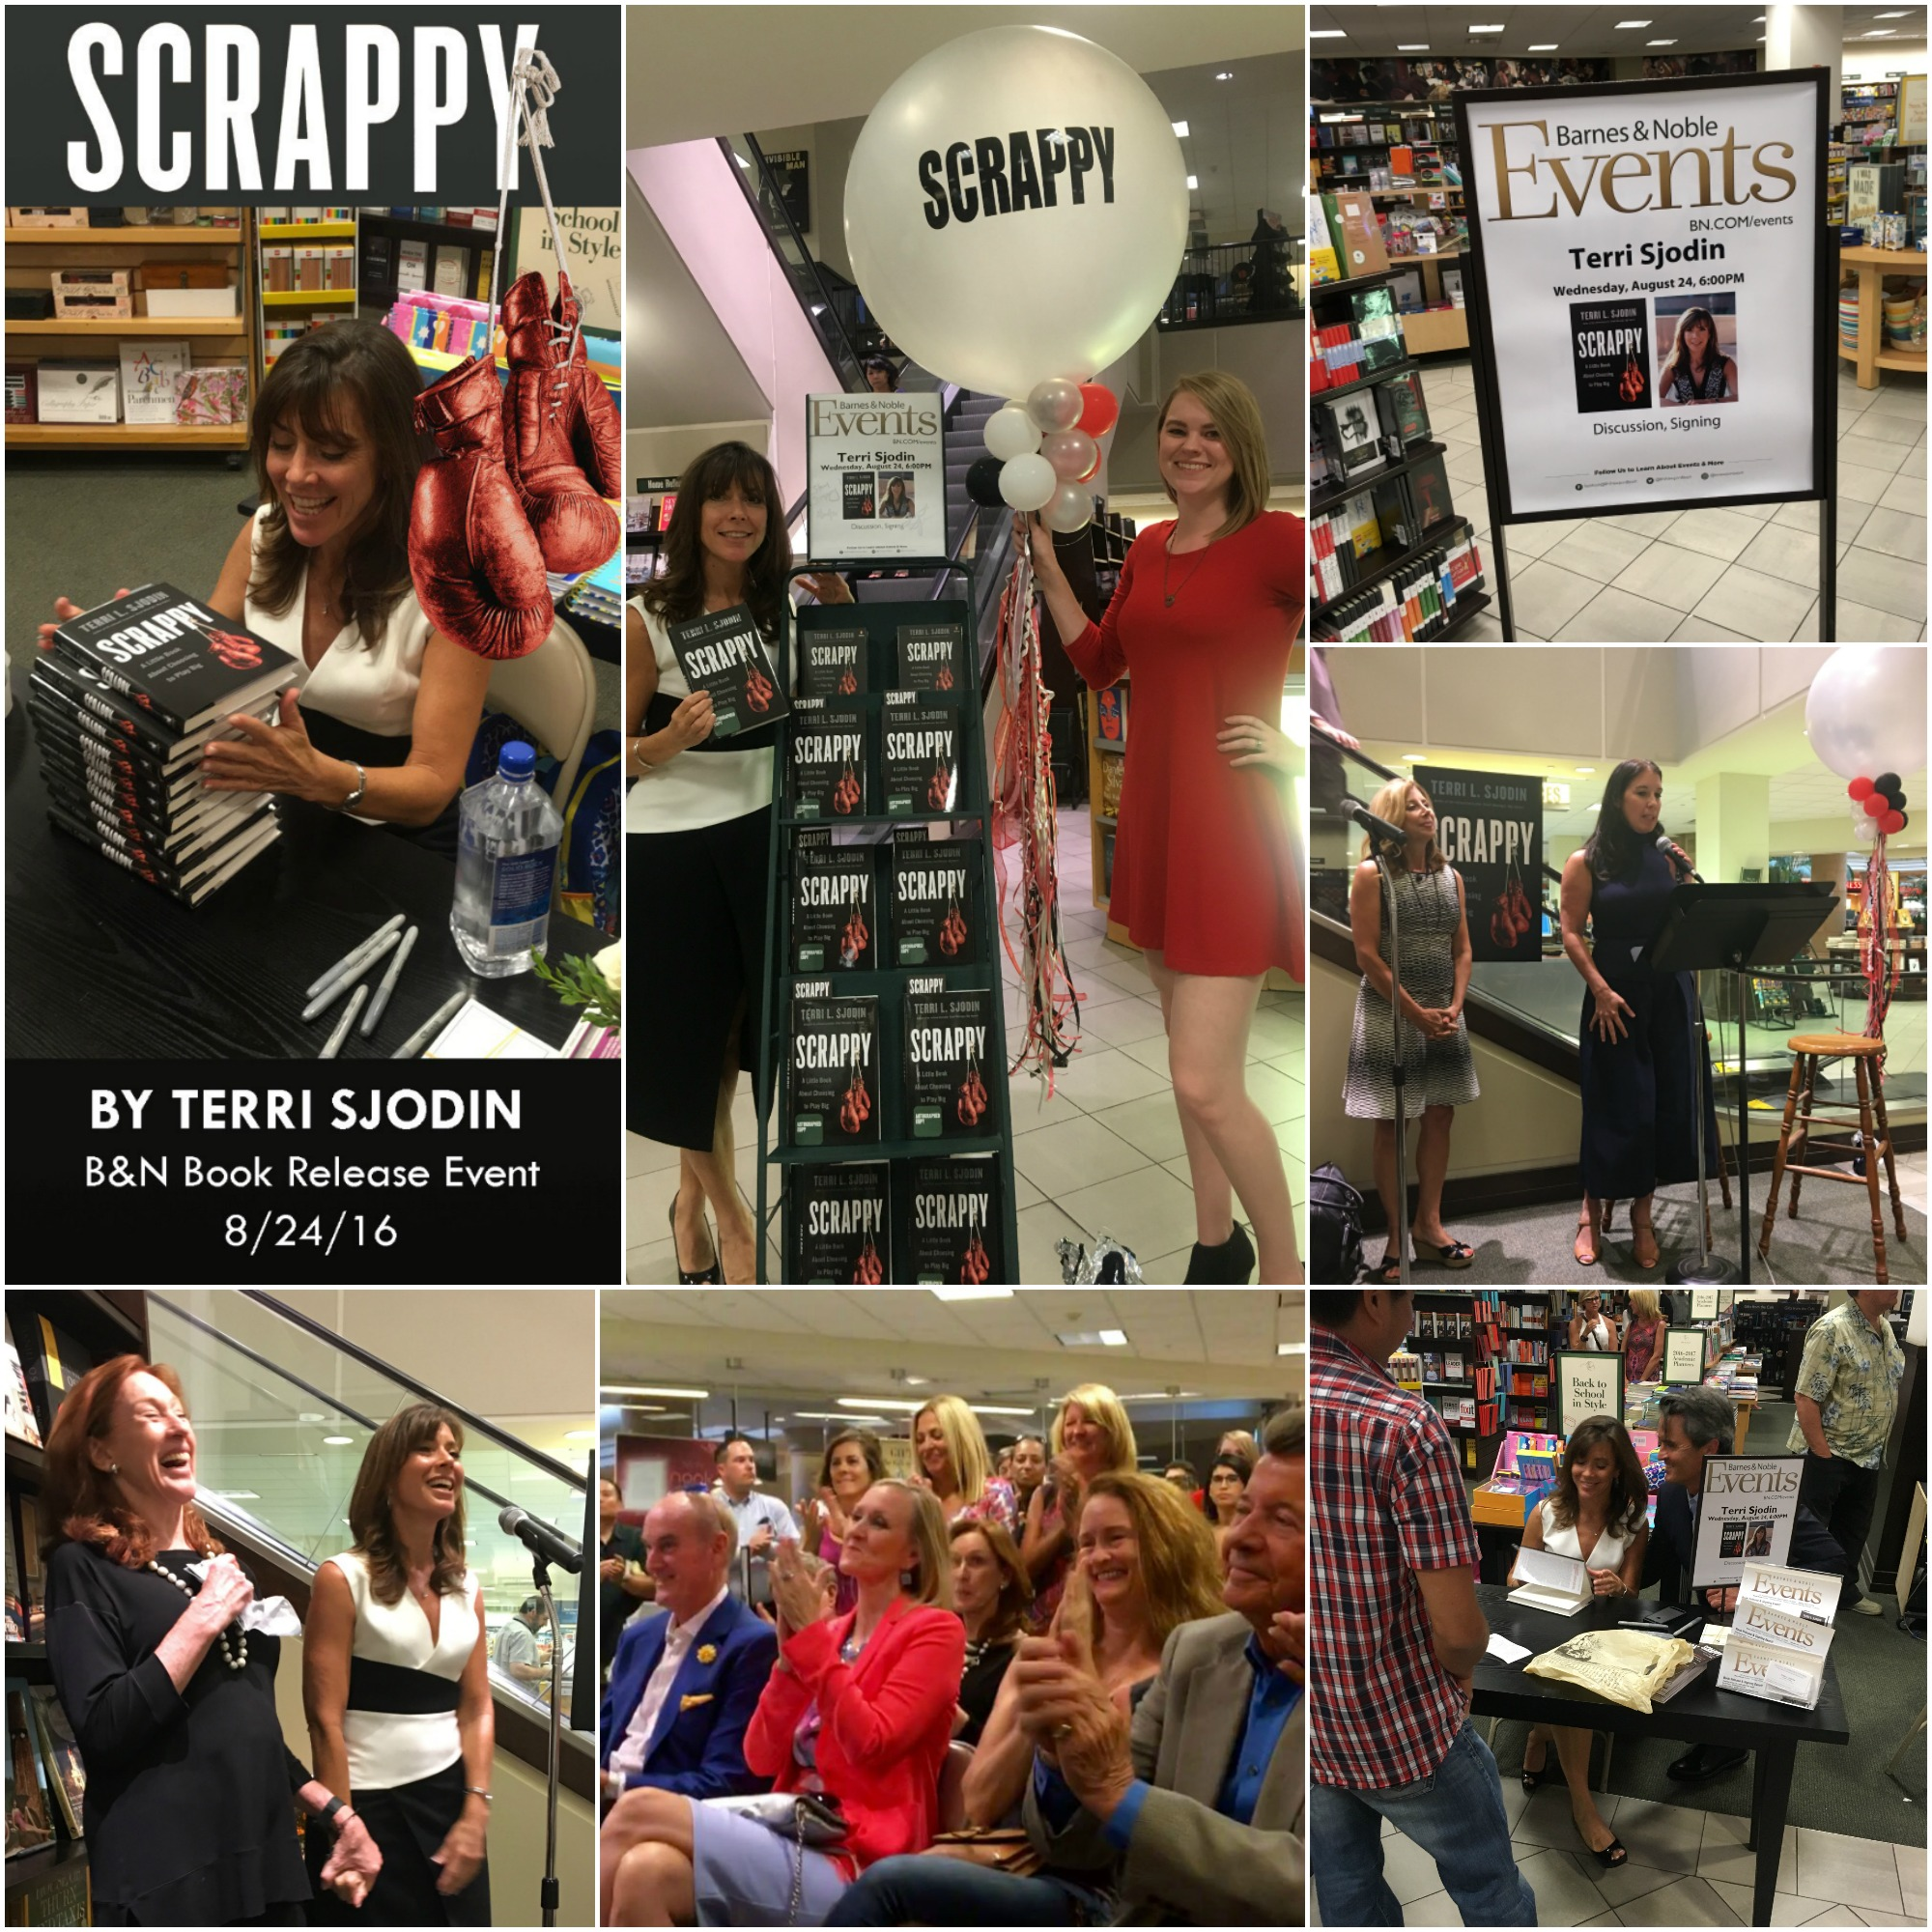 """Scrappy"" Book Release & Signing Event at Barnes & Noble"